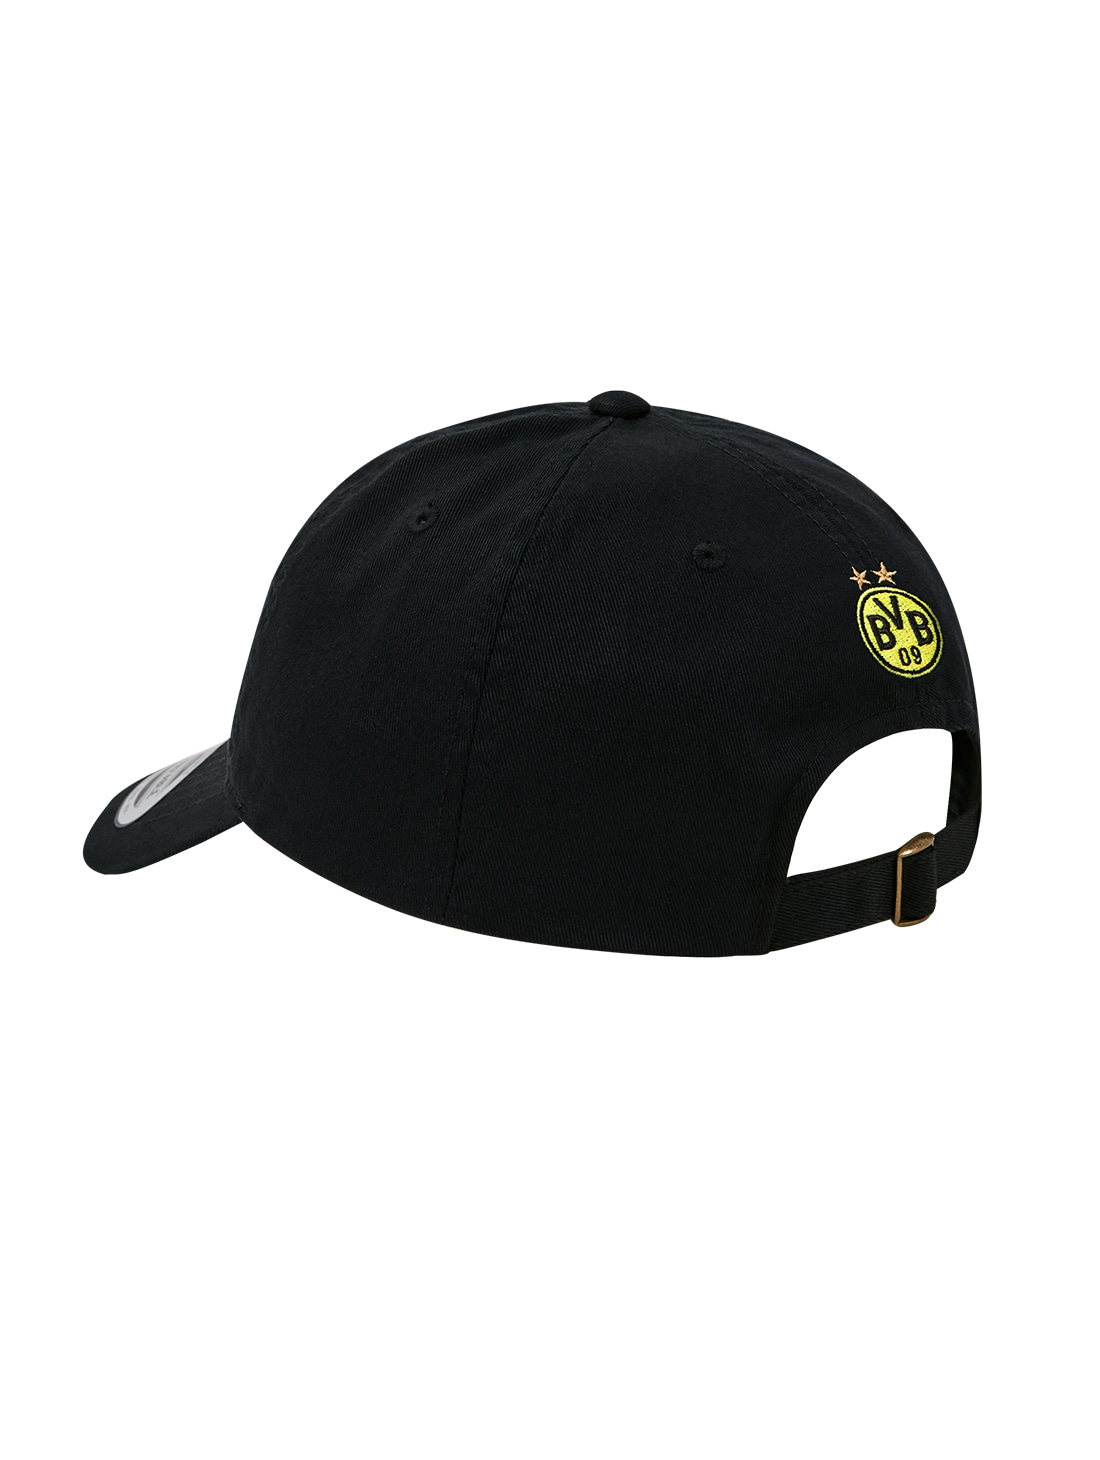 BVB TEXT CAP